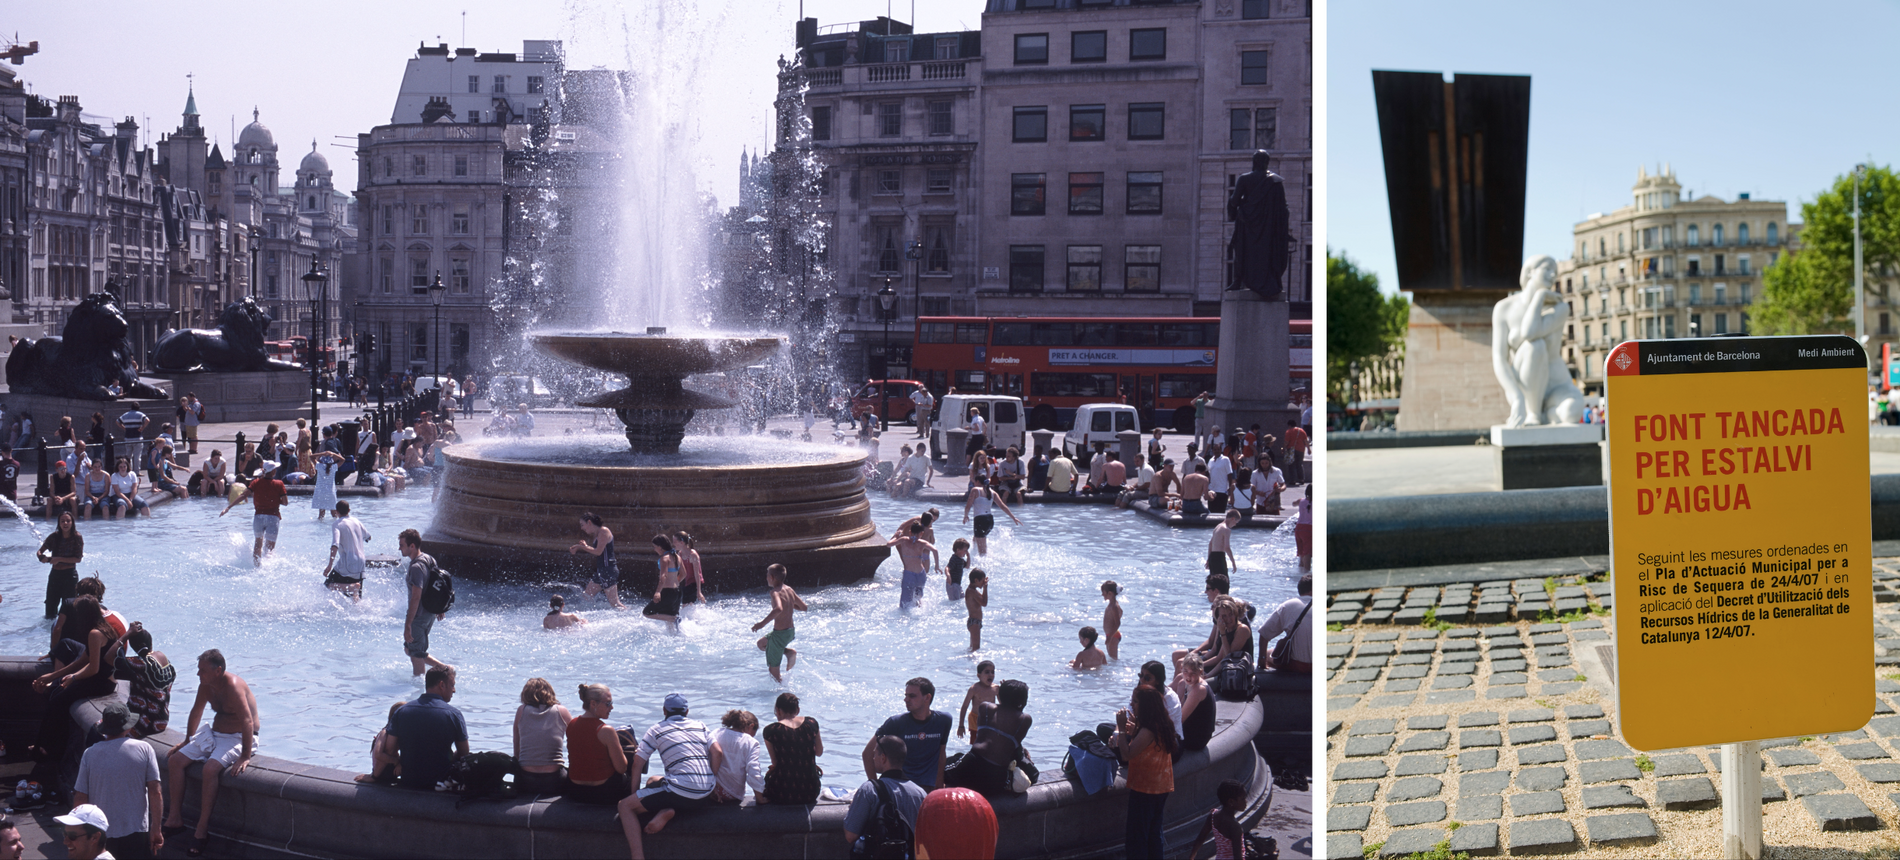 Reactions in London during the hottest heatwave on record (38.1 deg C, 2003) – and a ...